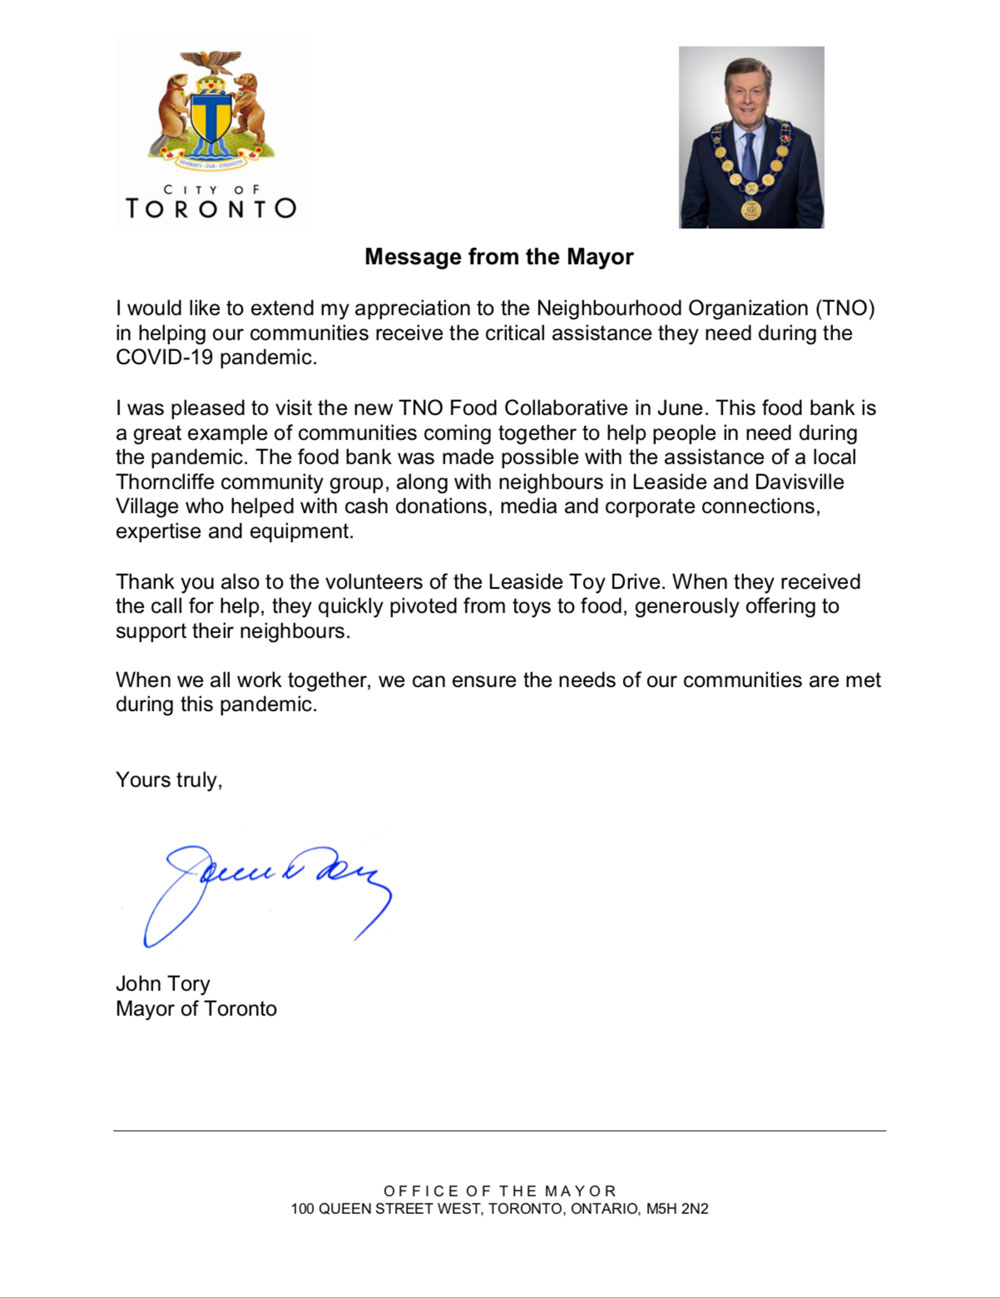 Mayor Tory congratulatory letter for the TNO Food Bank.